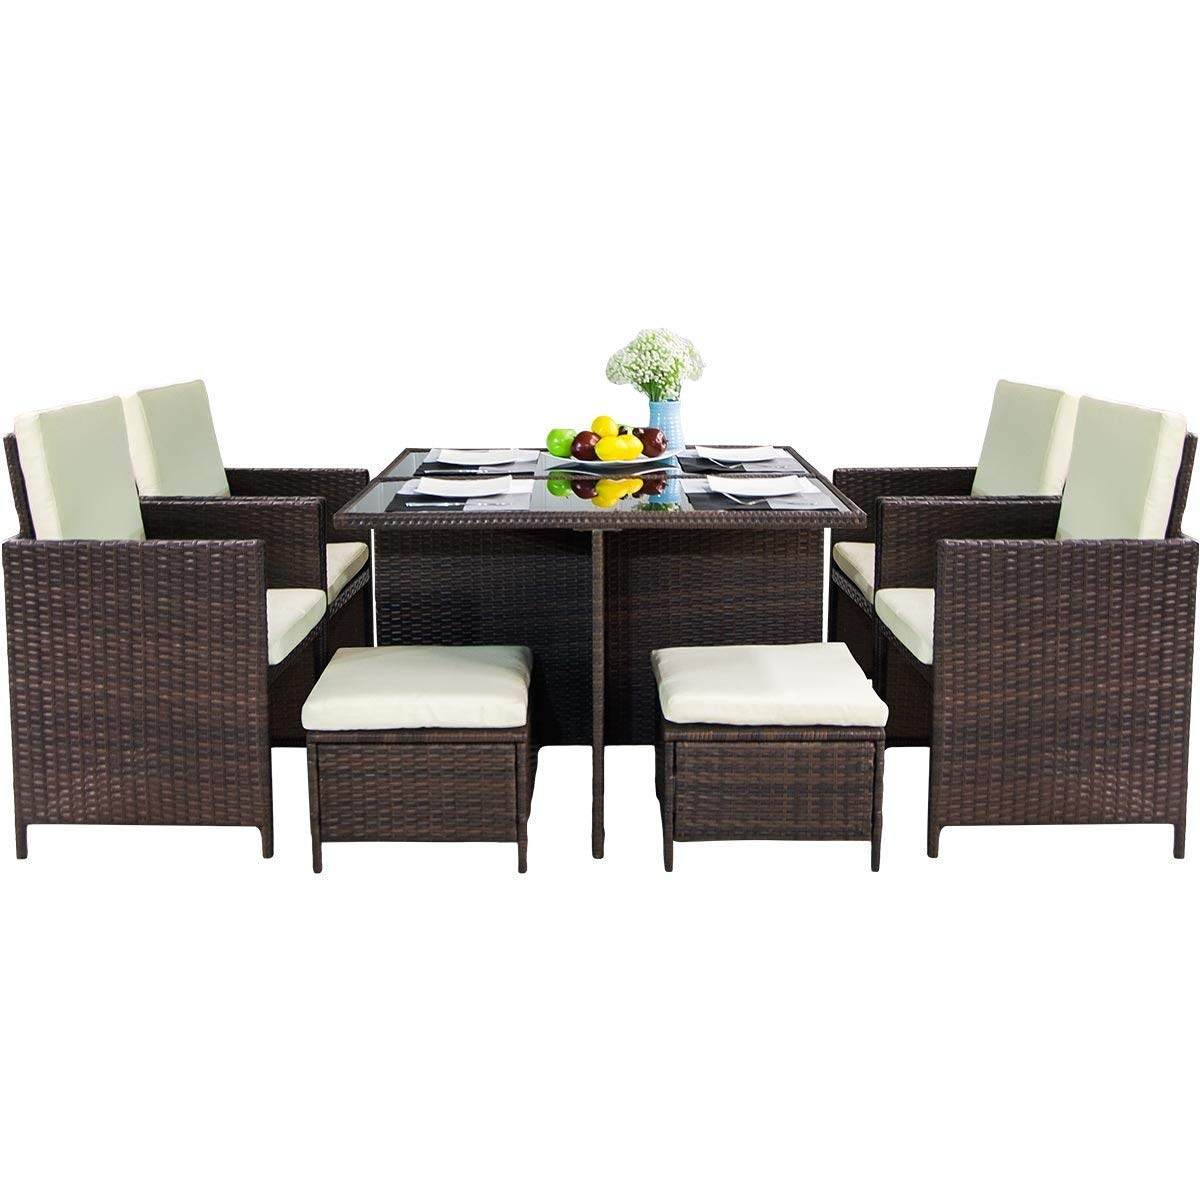 LZ LEISURE ZONE 9 Piece Patio Furniture Dining Set Outdoor Garden Wicker Rattan Dining Table Chairs Conversation Set with Cushions